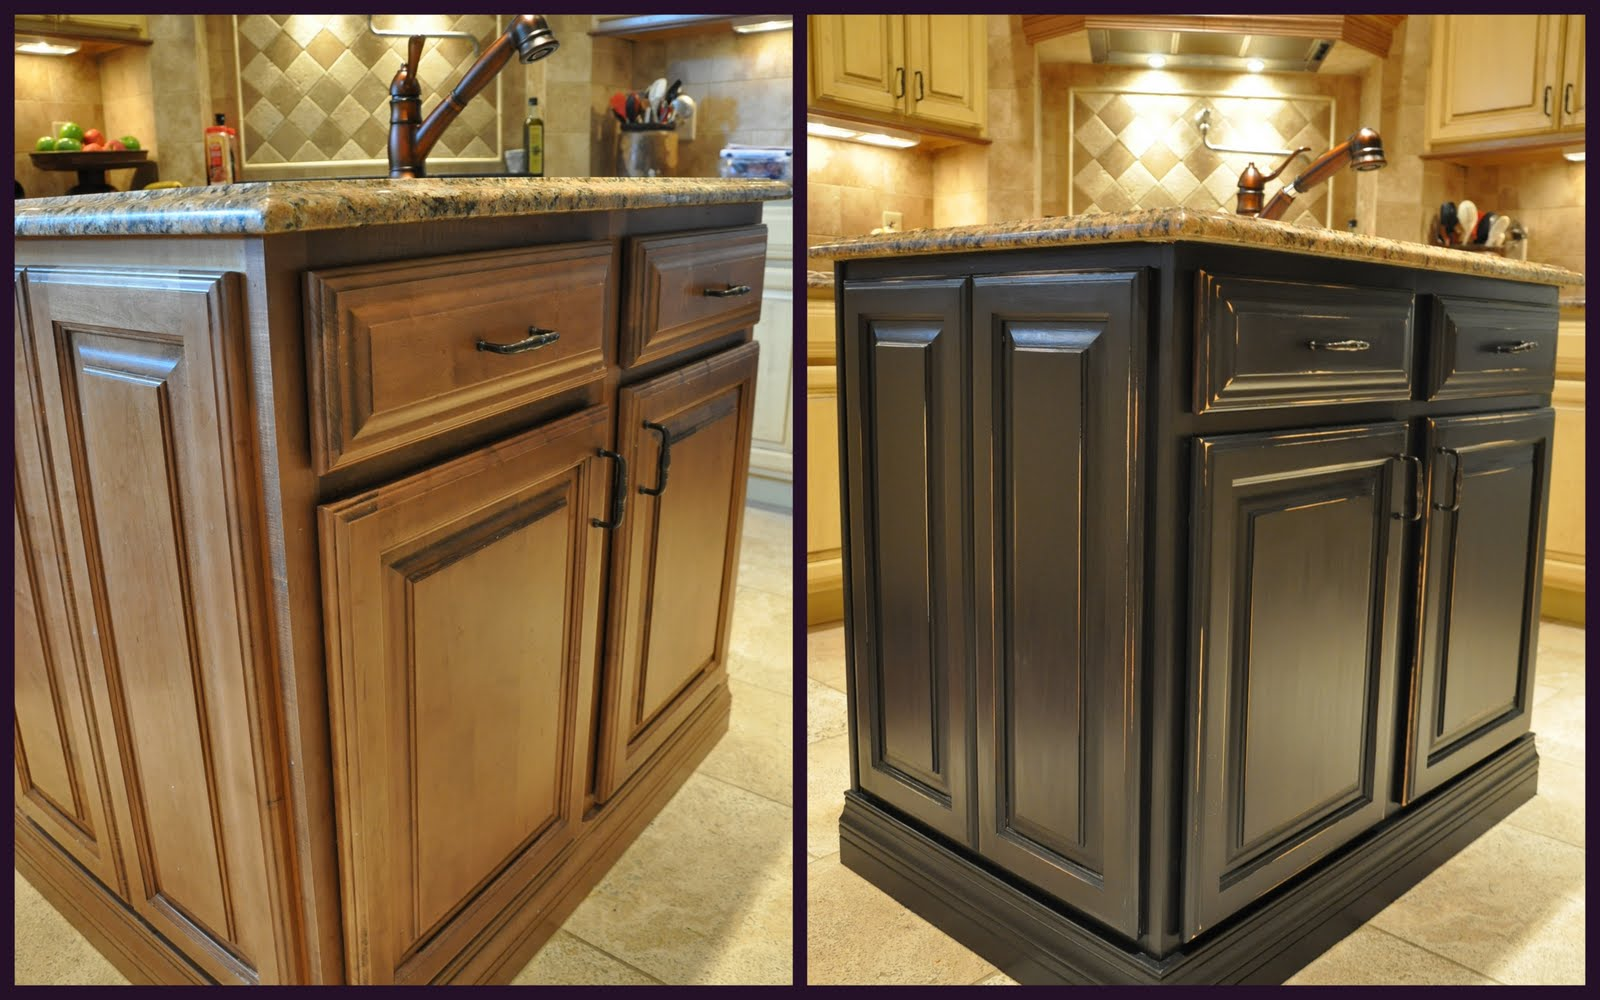 How To Spruce Up Tired Kitchen Cabinets